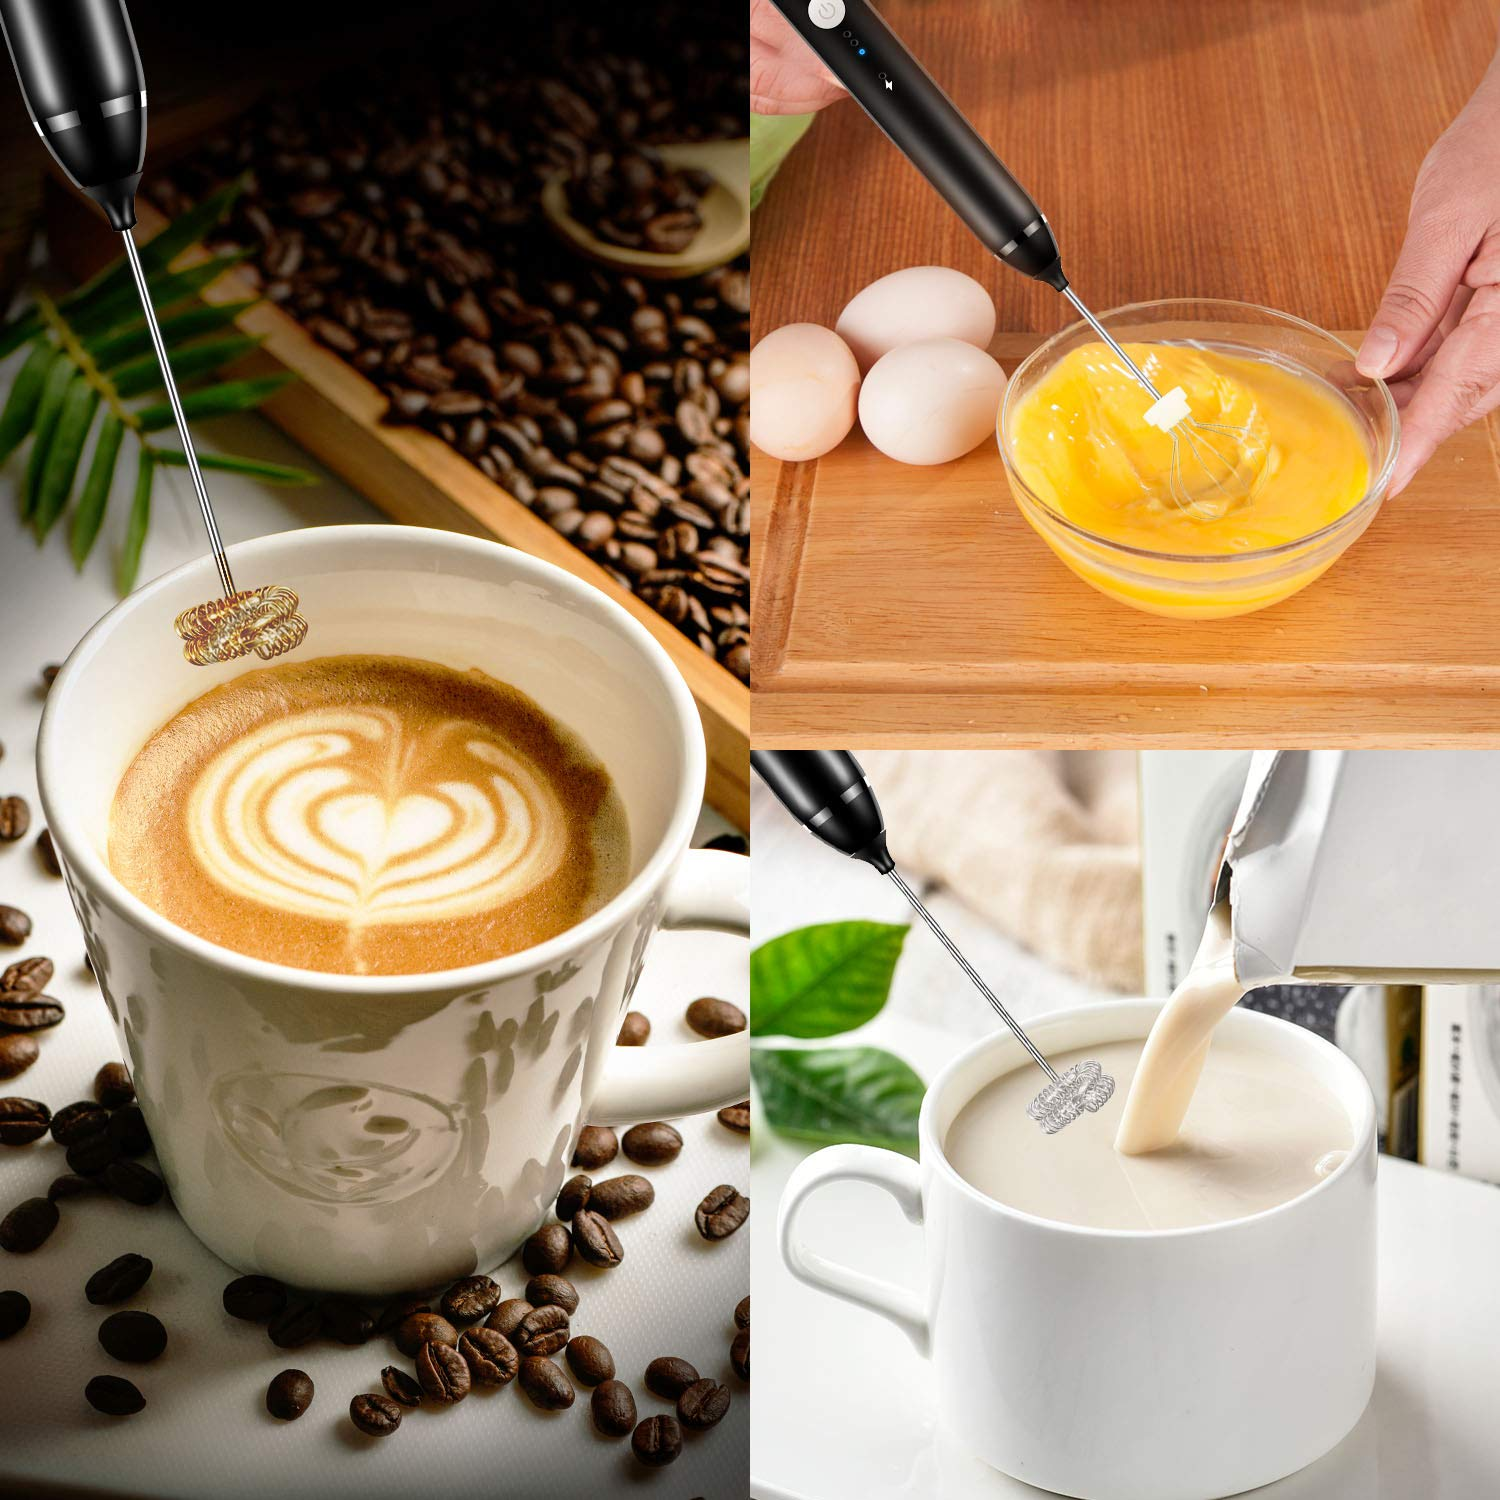 Milk Frother Handheld, USB Rechargeable Electric Frother with 2 Stainless Whisks, 3-Speed Adjustable Mini Durable Drink Egg Blender, Professional Foam Maker for Coffee, Lattes, Cappuccino, Hot Chocolate by Kitdine (Image #8)